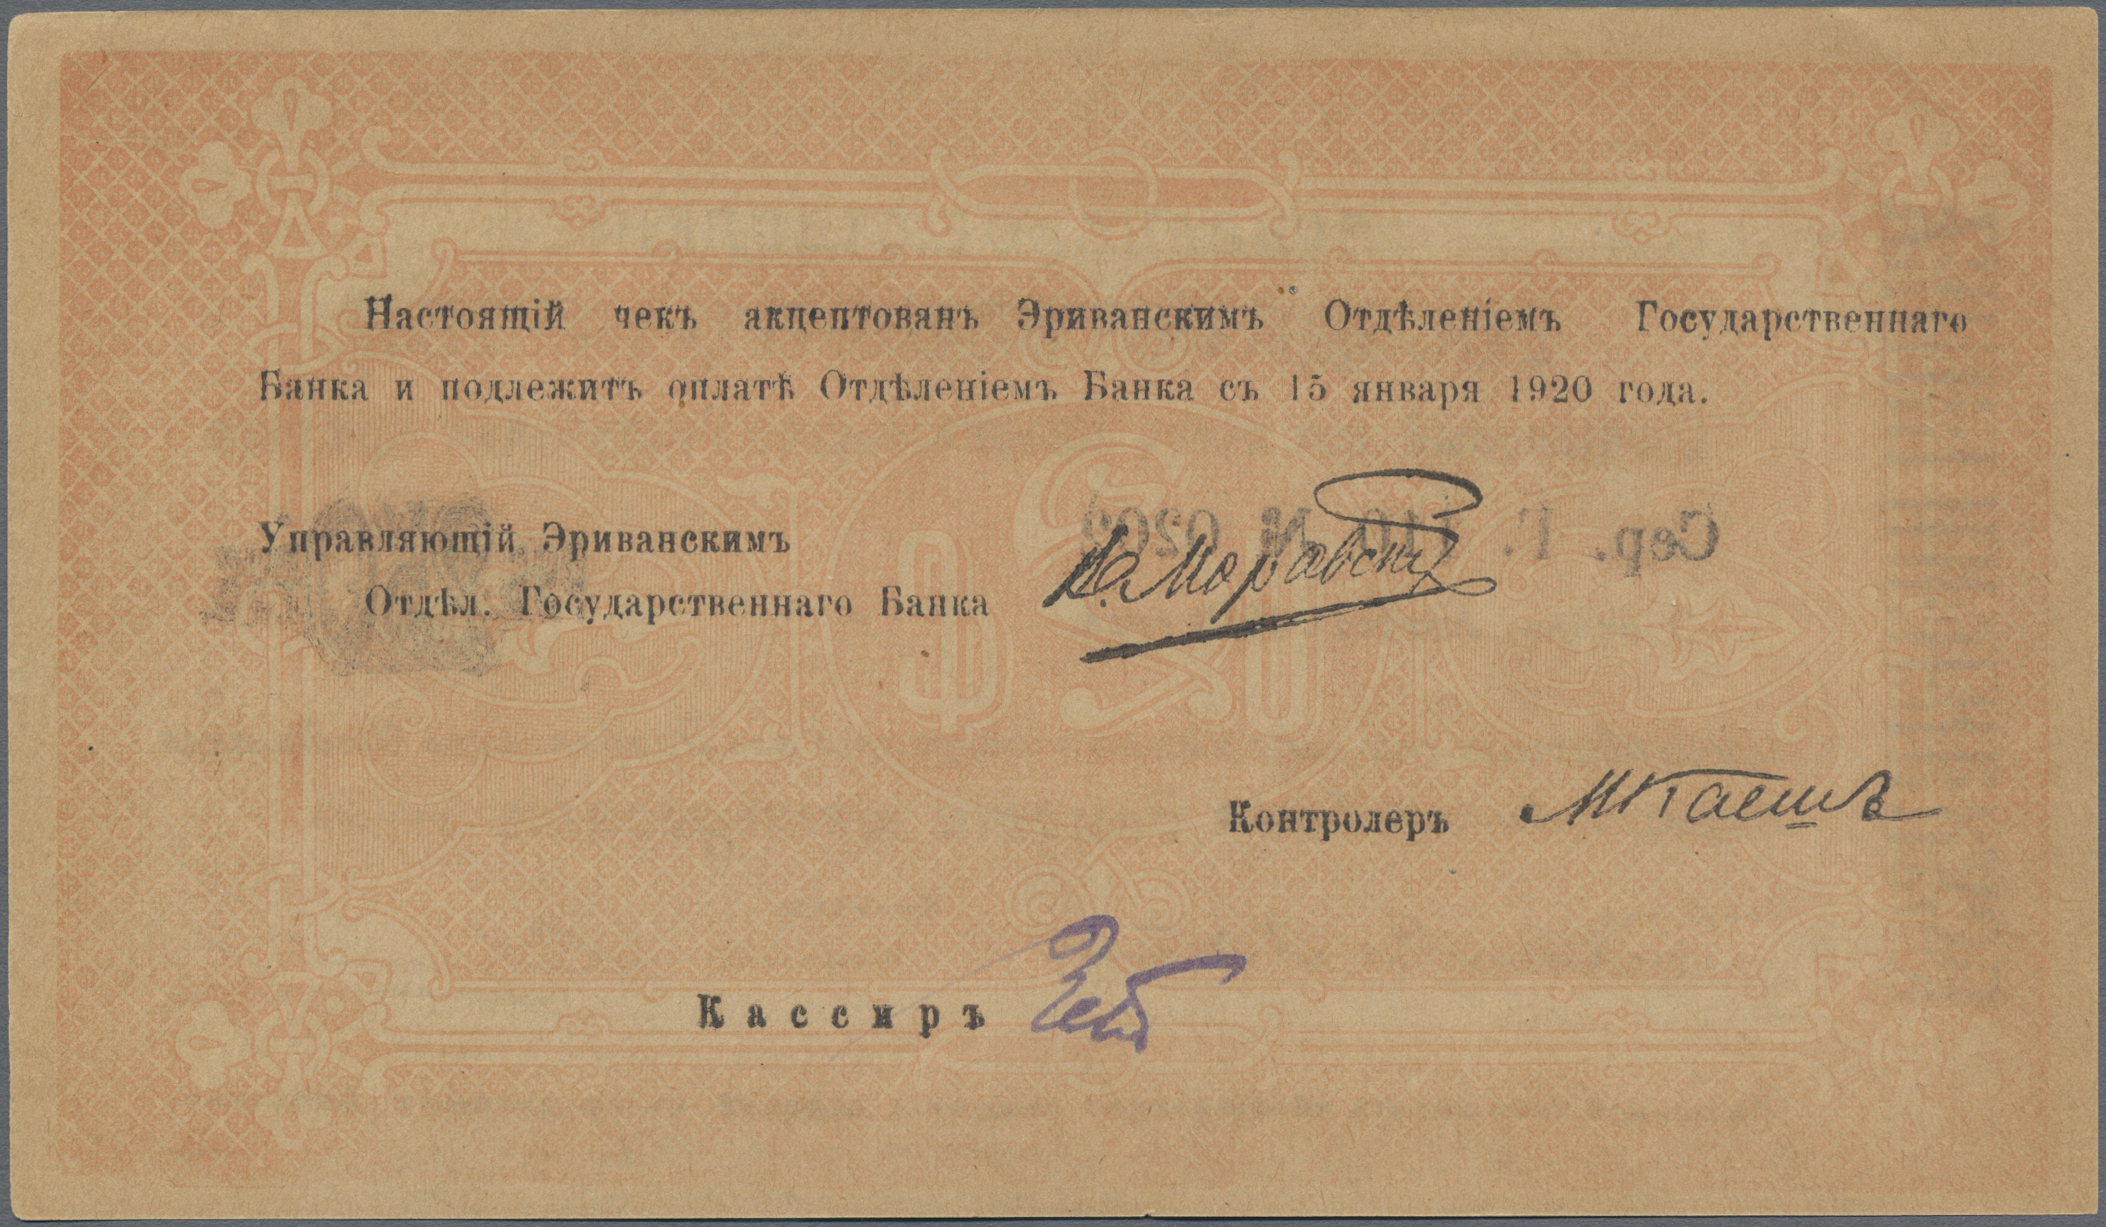 Lot 00022 - Armenia / Armenien | Banknoten  -  Auktionshaus Christoph Gärtner GmbH & Co. KG Sale #48 The Banknotes